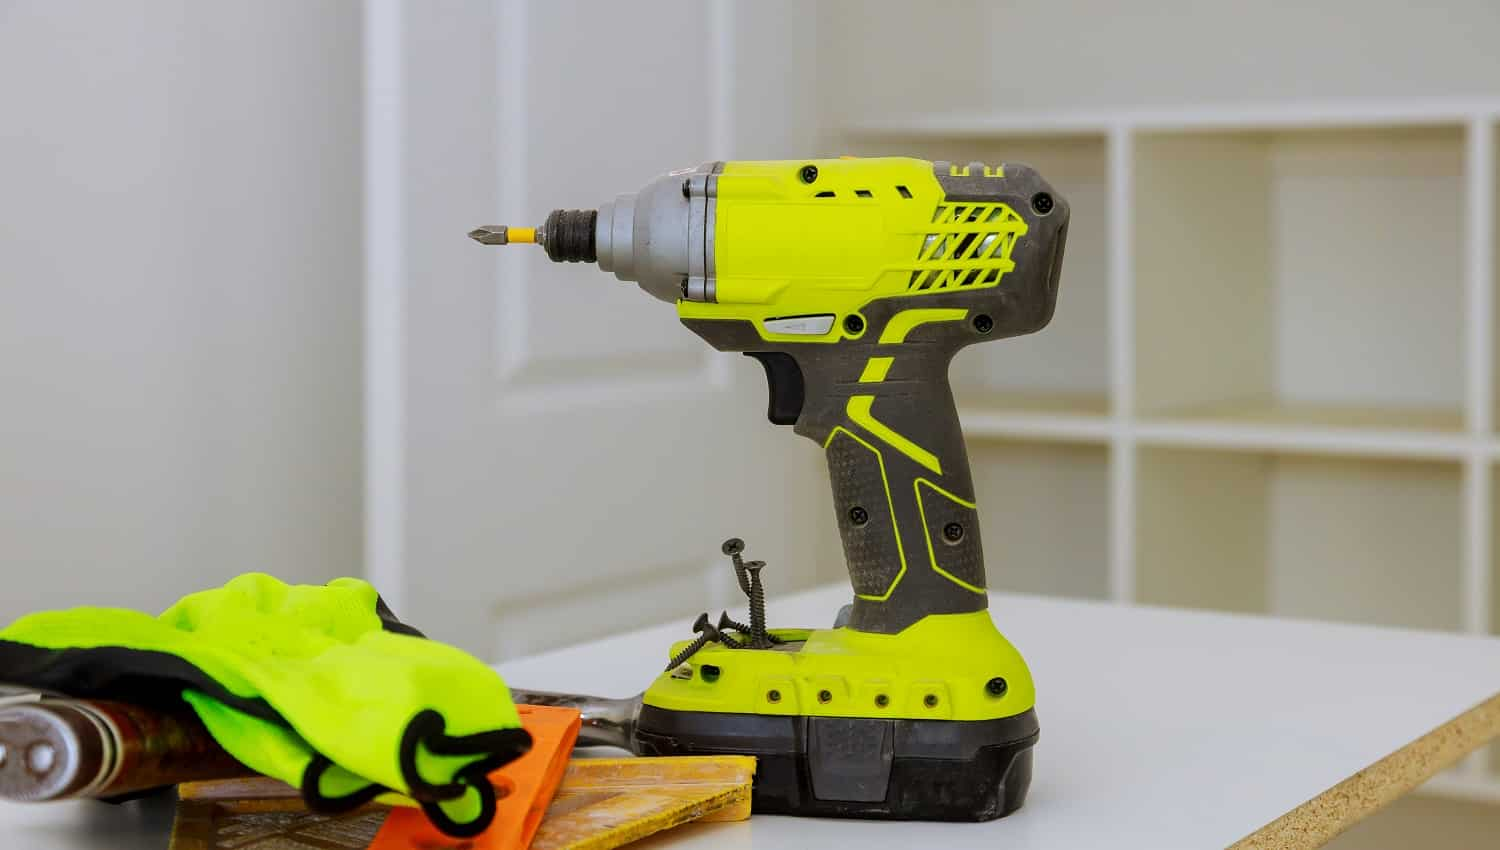 A set of construction tools cordless screwdriver drill work tool